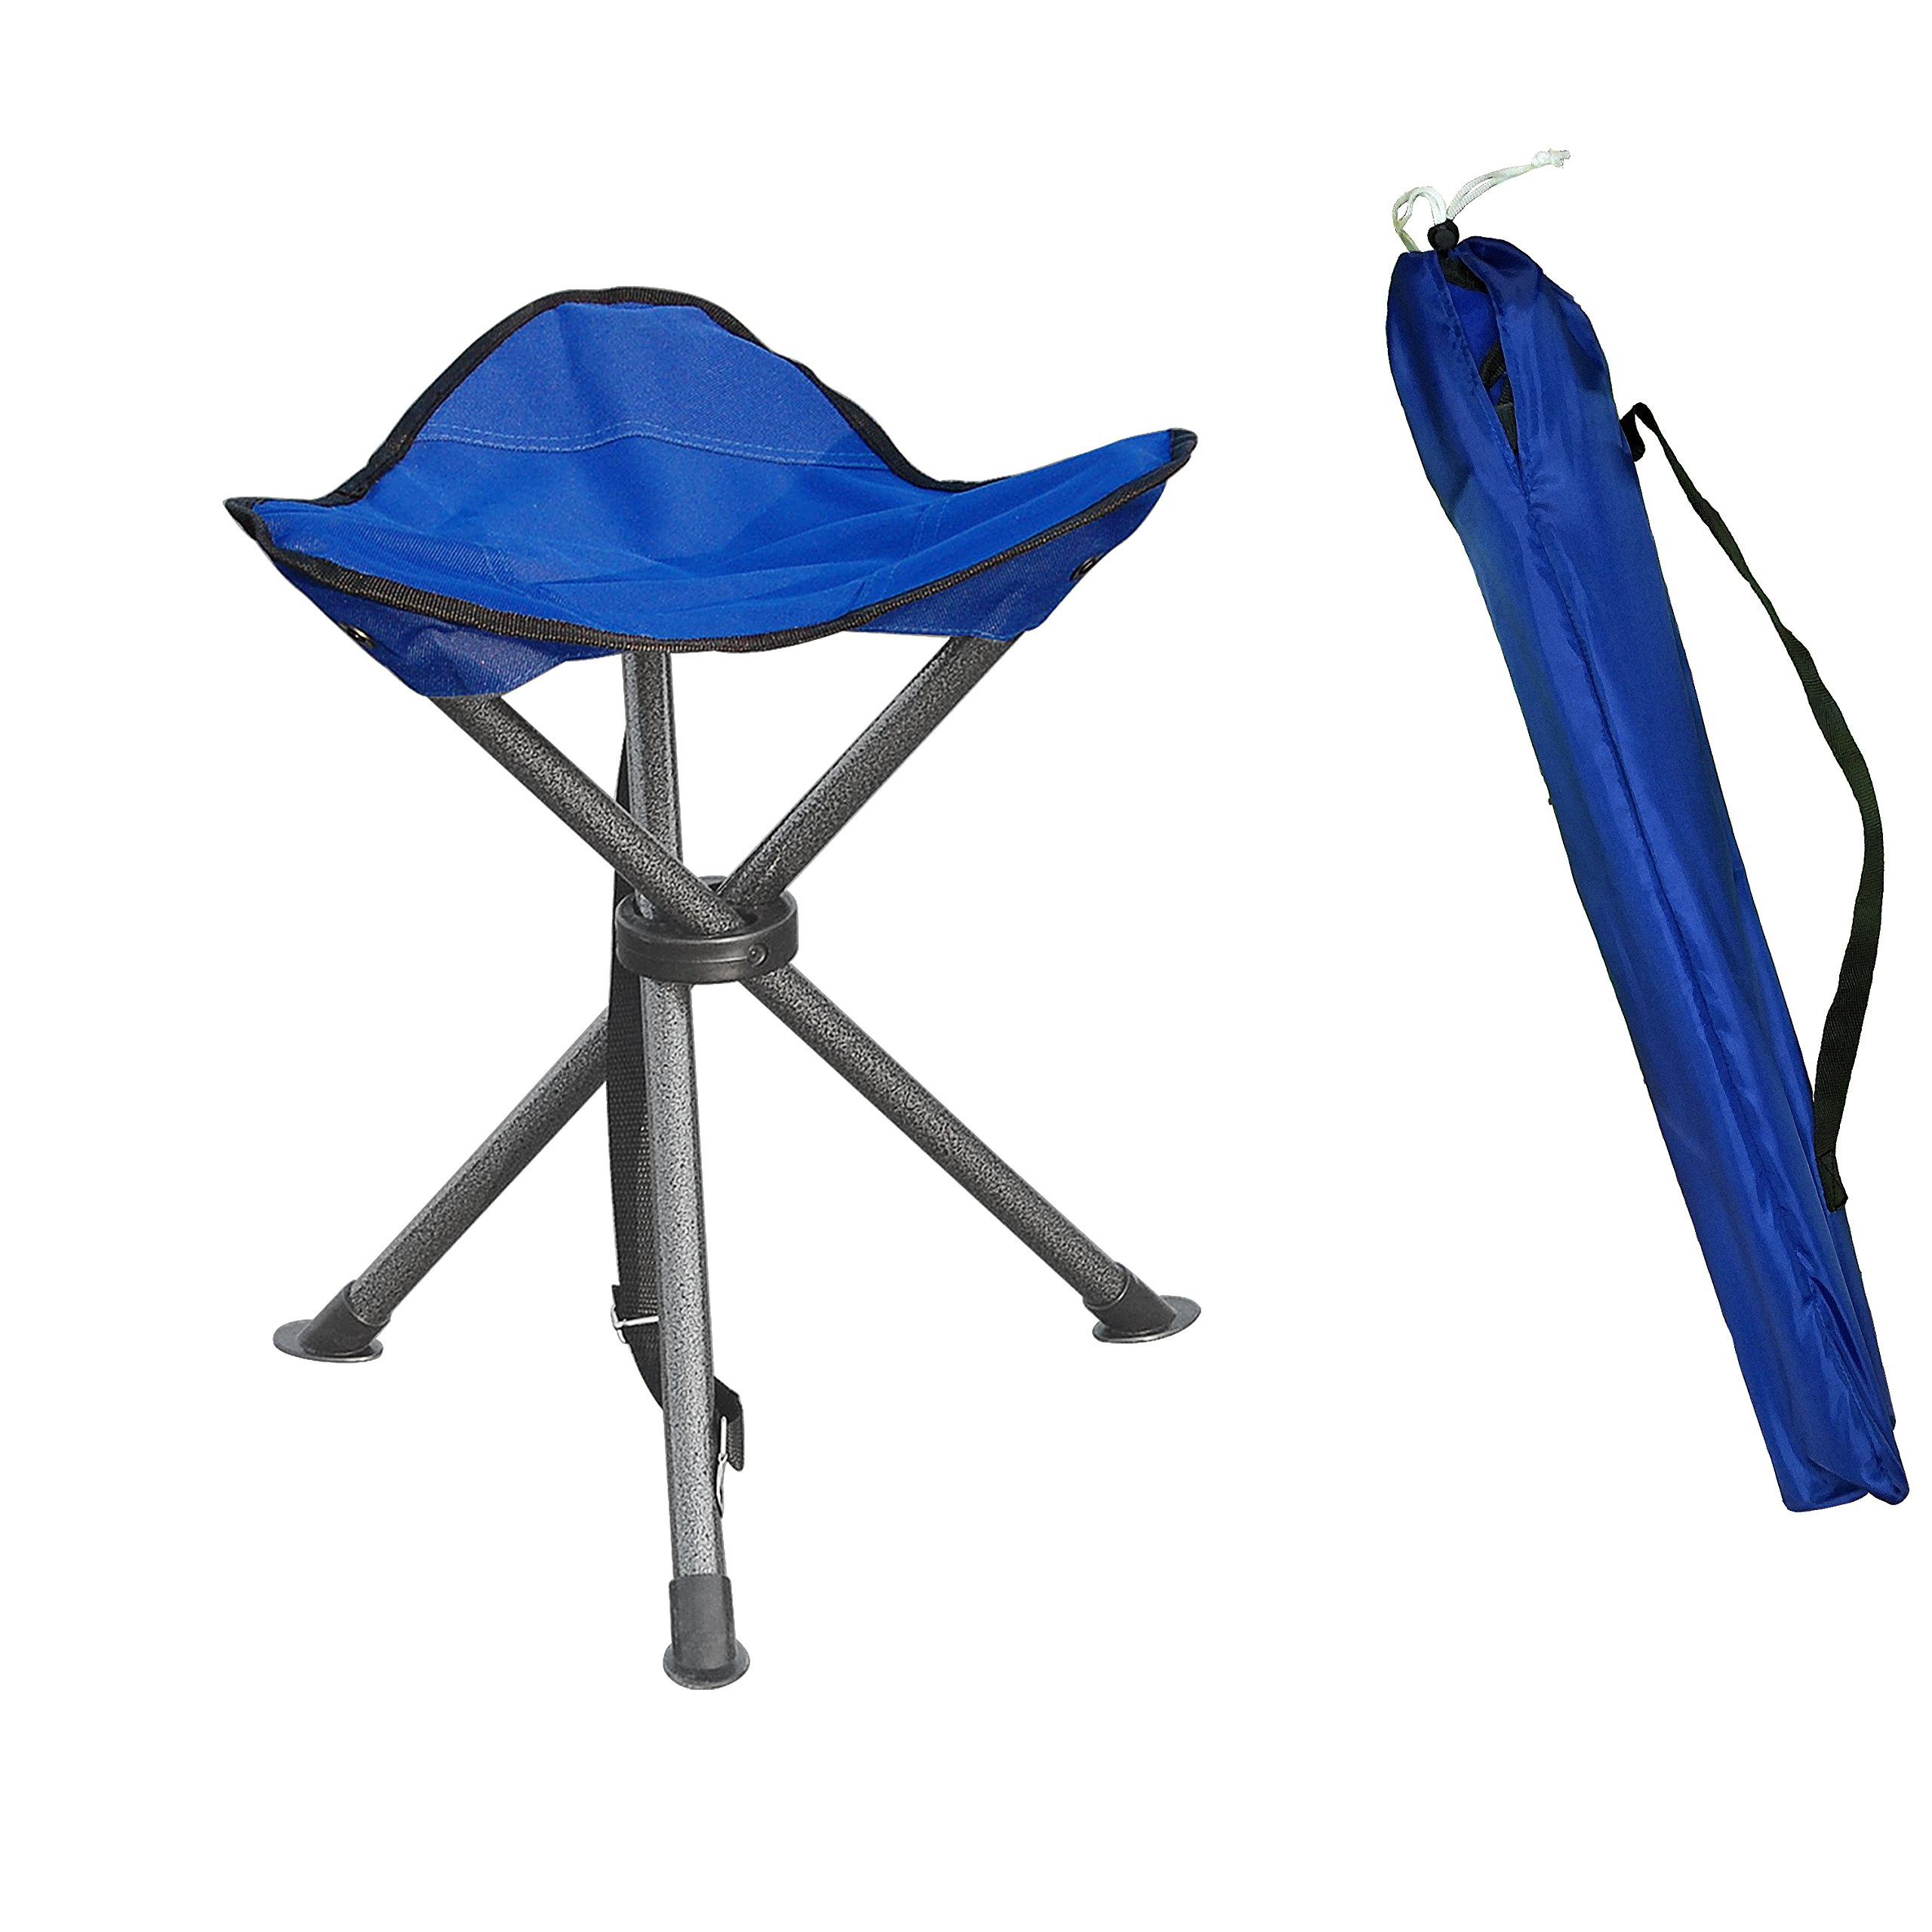 AGOOL Portable Folding Stool Outdoor Square Slack Chair Lightweight Heavy Duty for Camping Mountaineering Hiking Travel House-Using Recreation, Blue